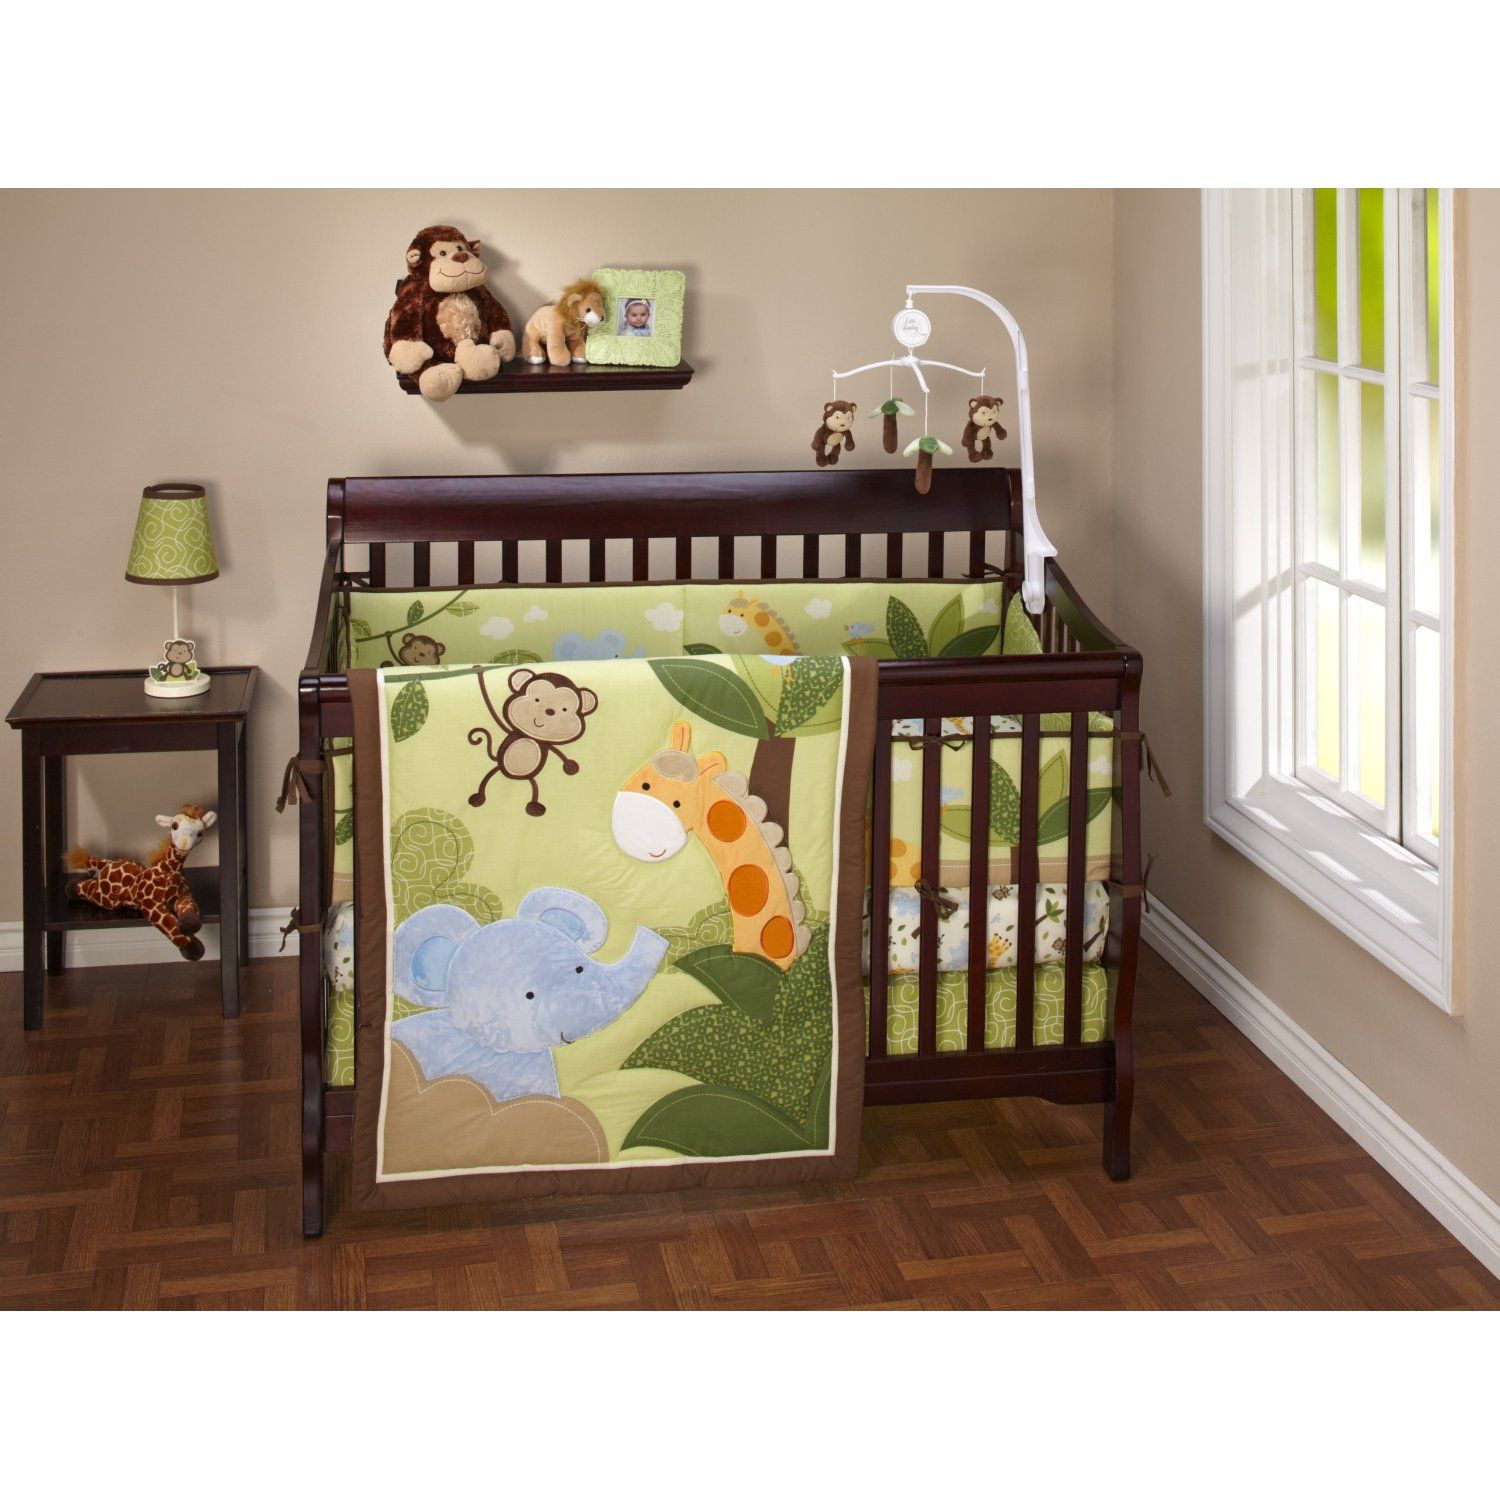 Custom Baby Bedding And Bumper Pads Jungle Theme Jungle Baby